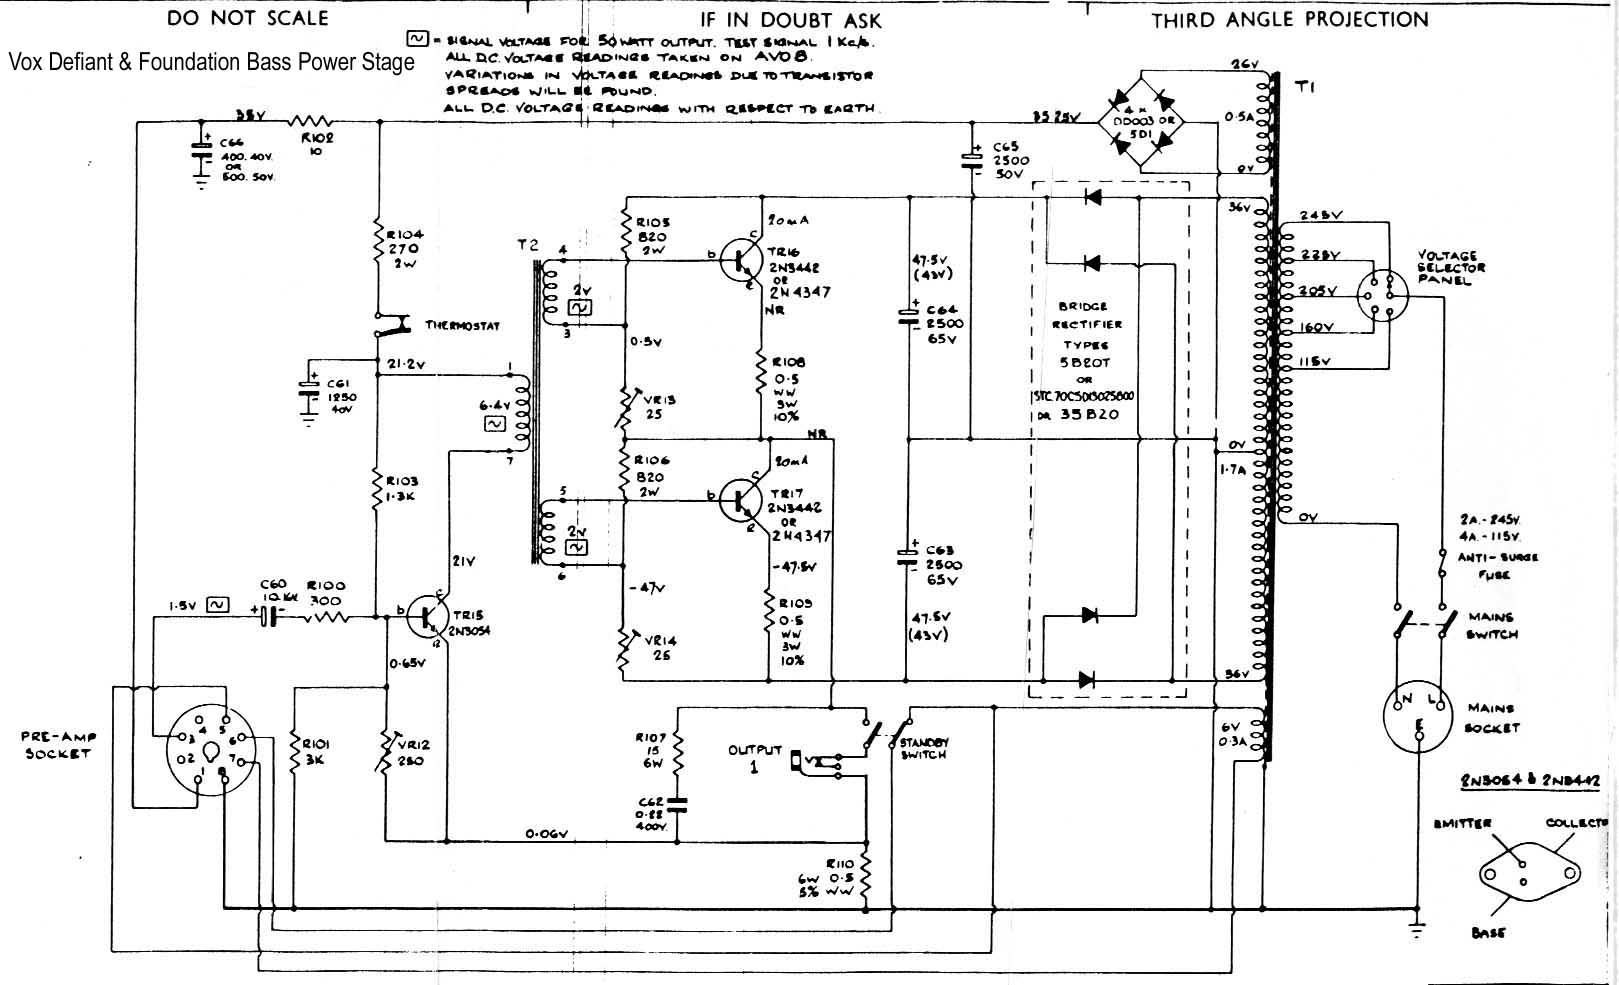 Circuits Gt Circuit Diagram Of Power Amplifier Electronic Current Detection Part Amplifiercircuit Vox Vintage Diagrams